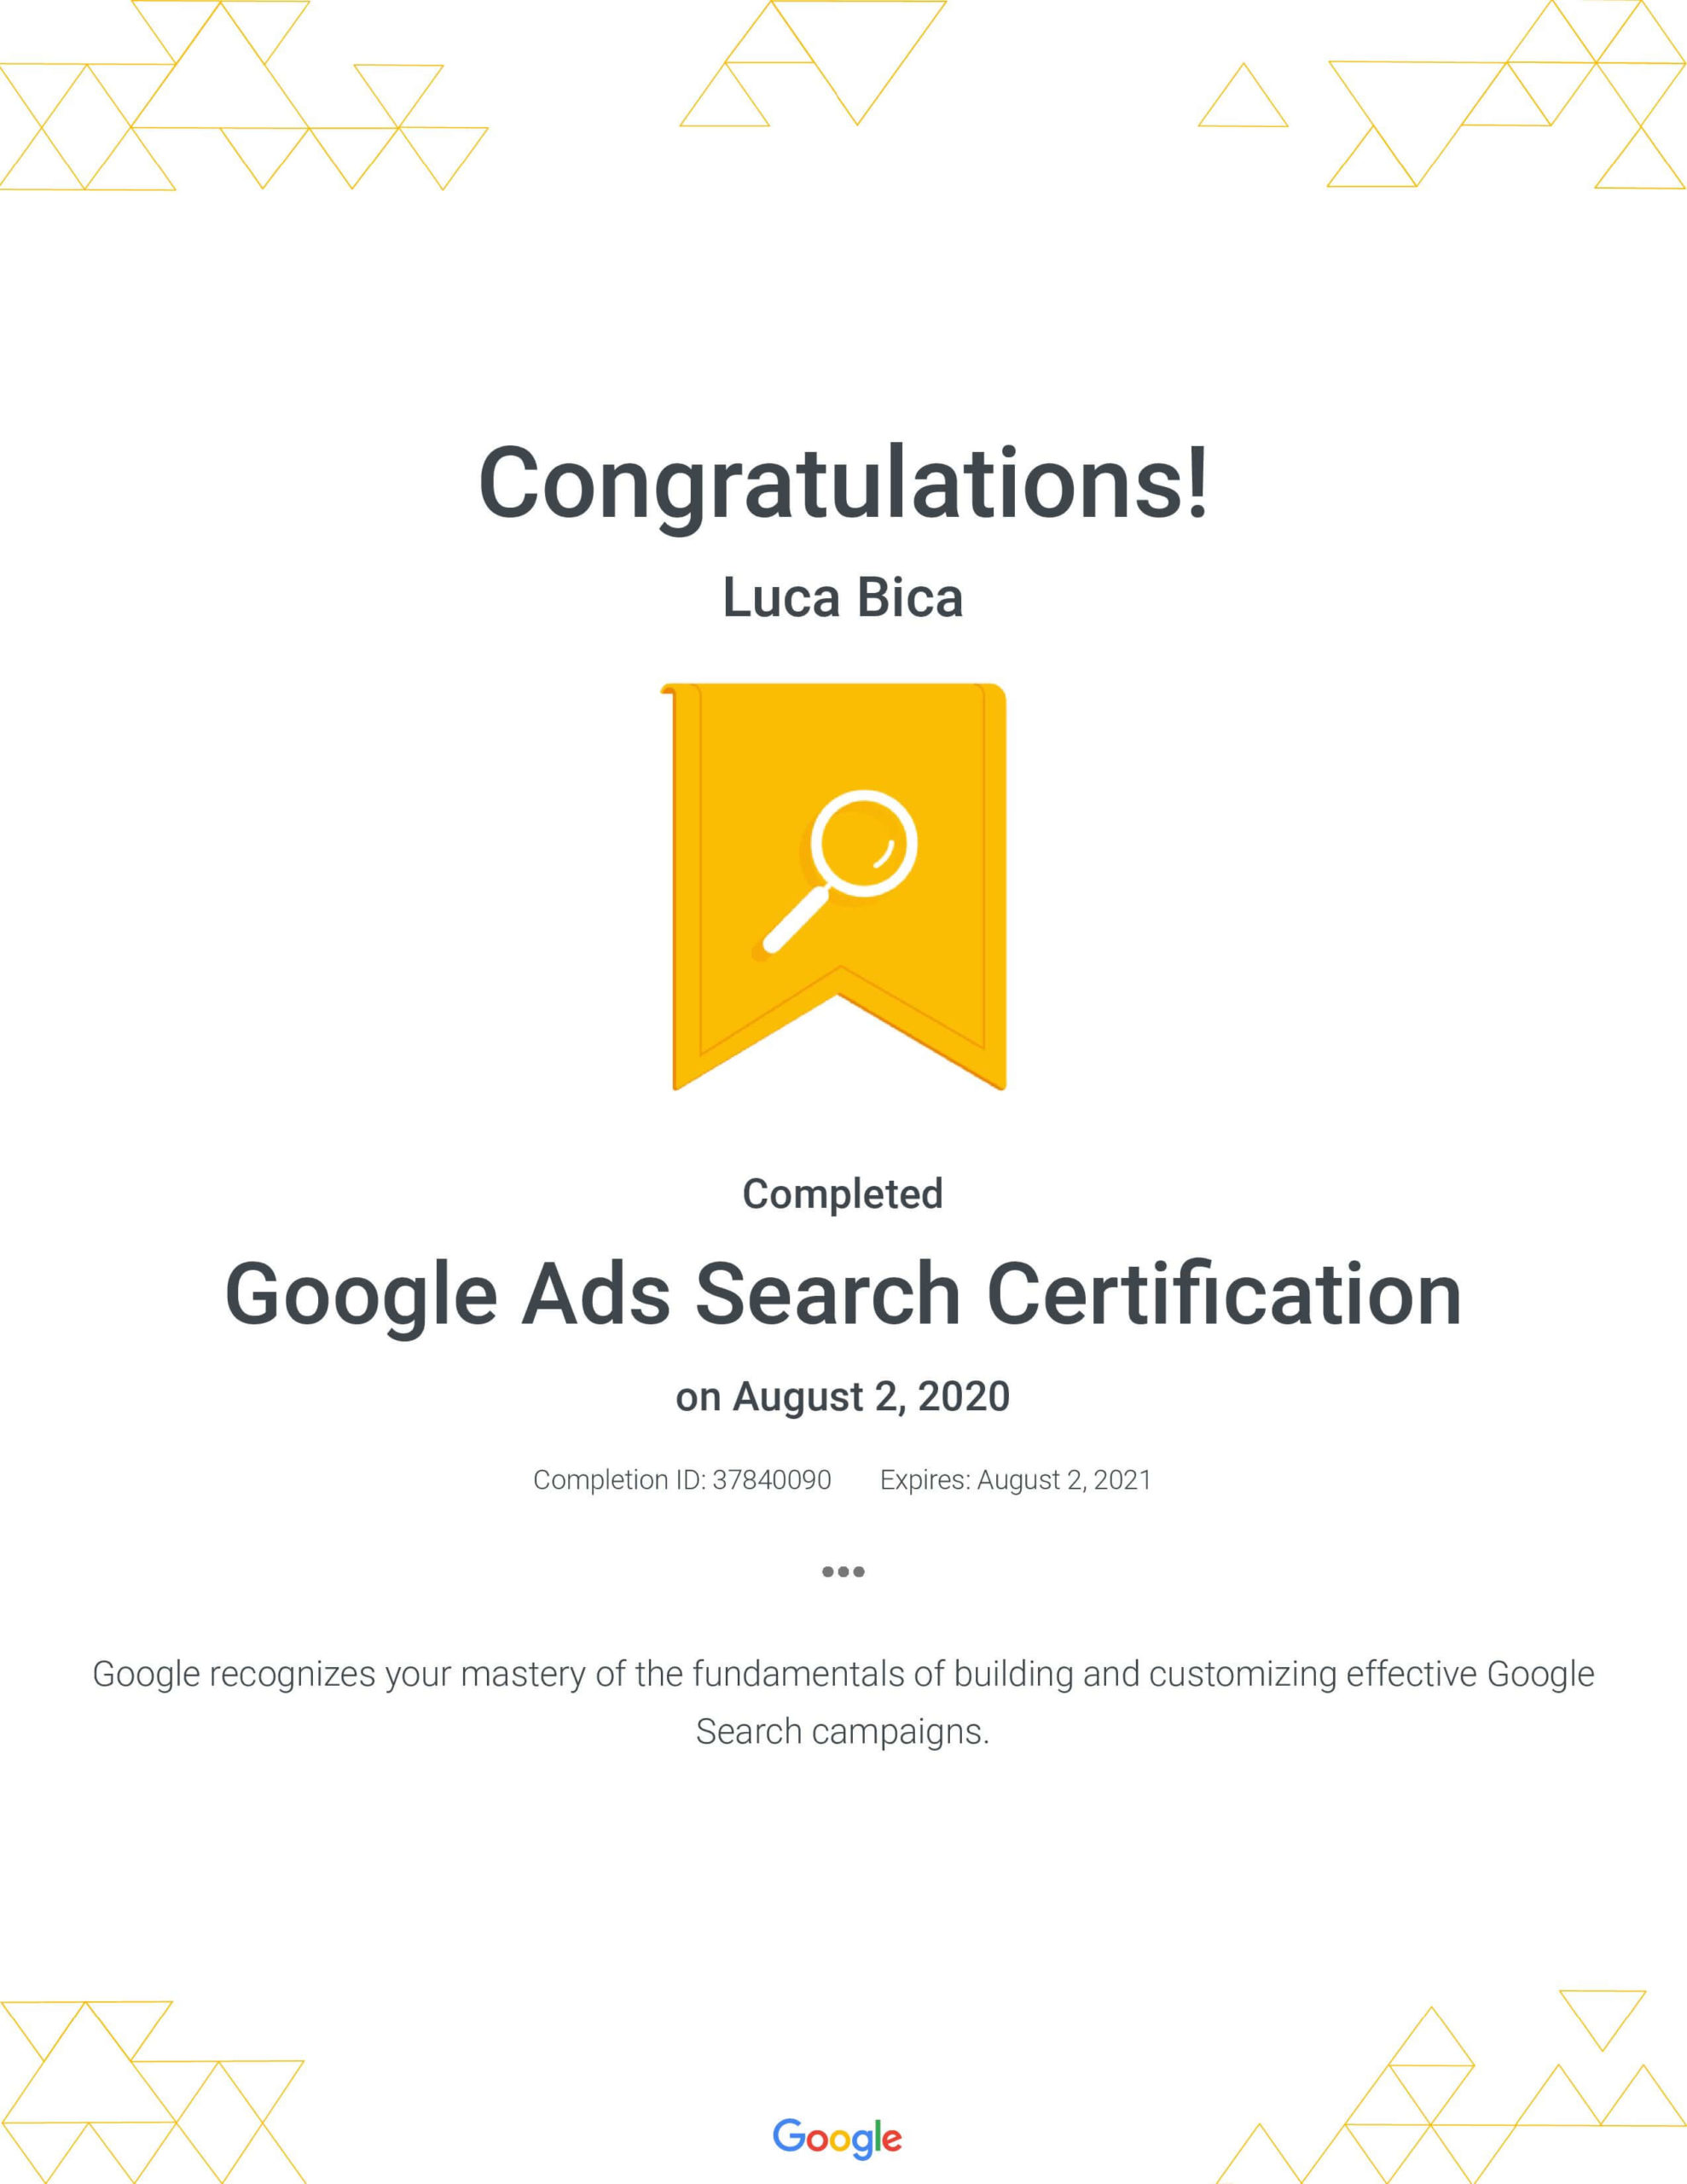 Google Ads Search Certification - Luca Bica